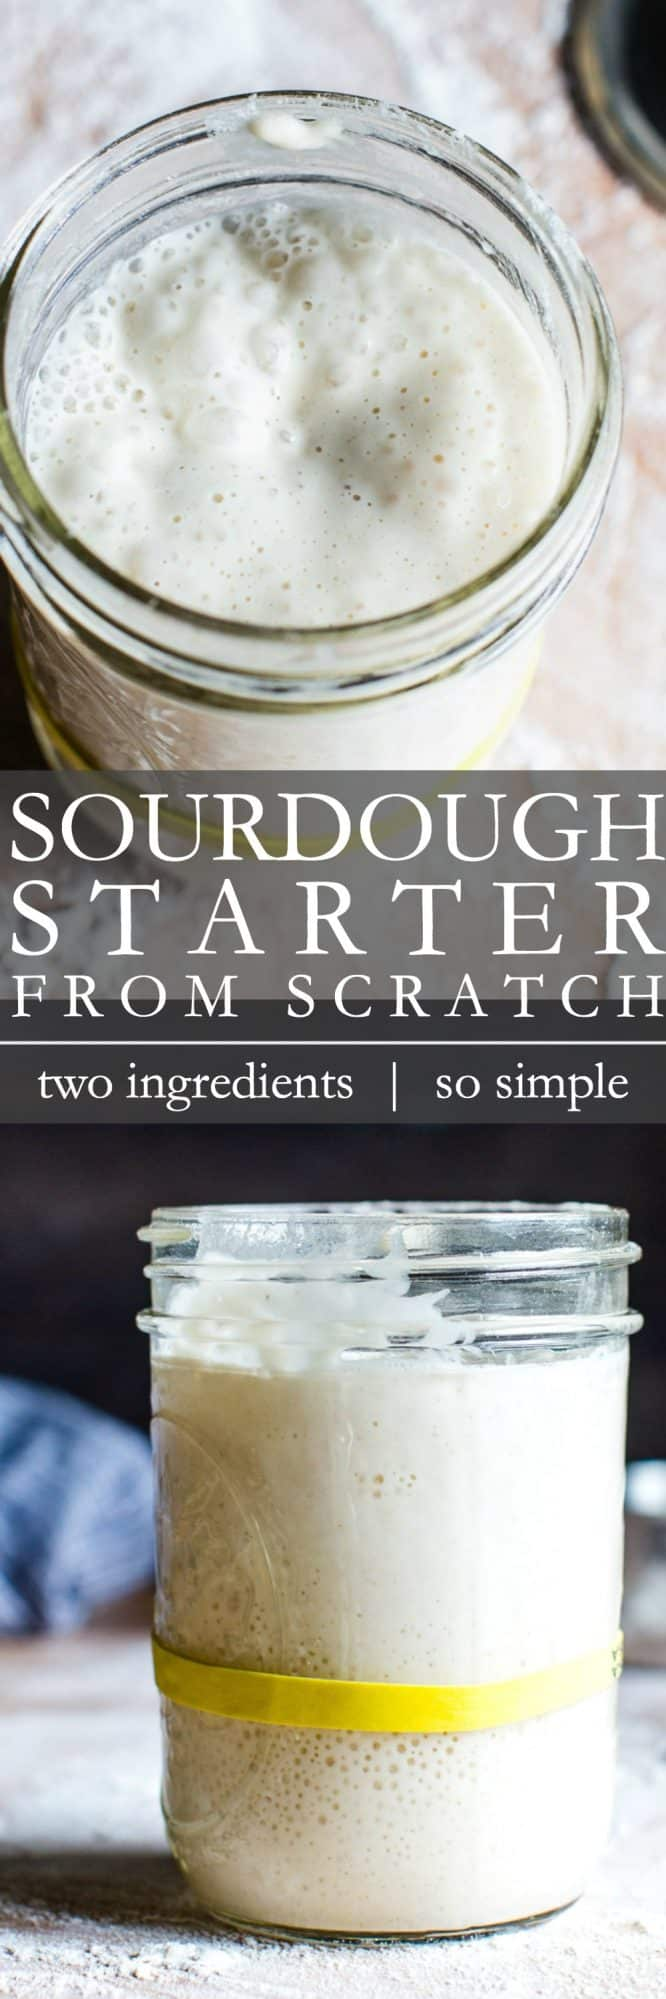 A tall sourdough starter from scratch pin for Pinterest.